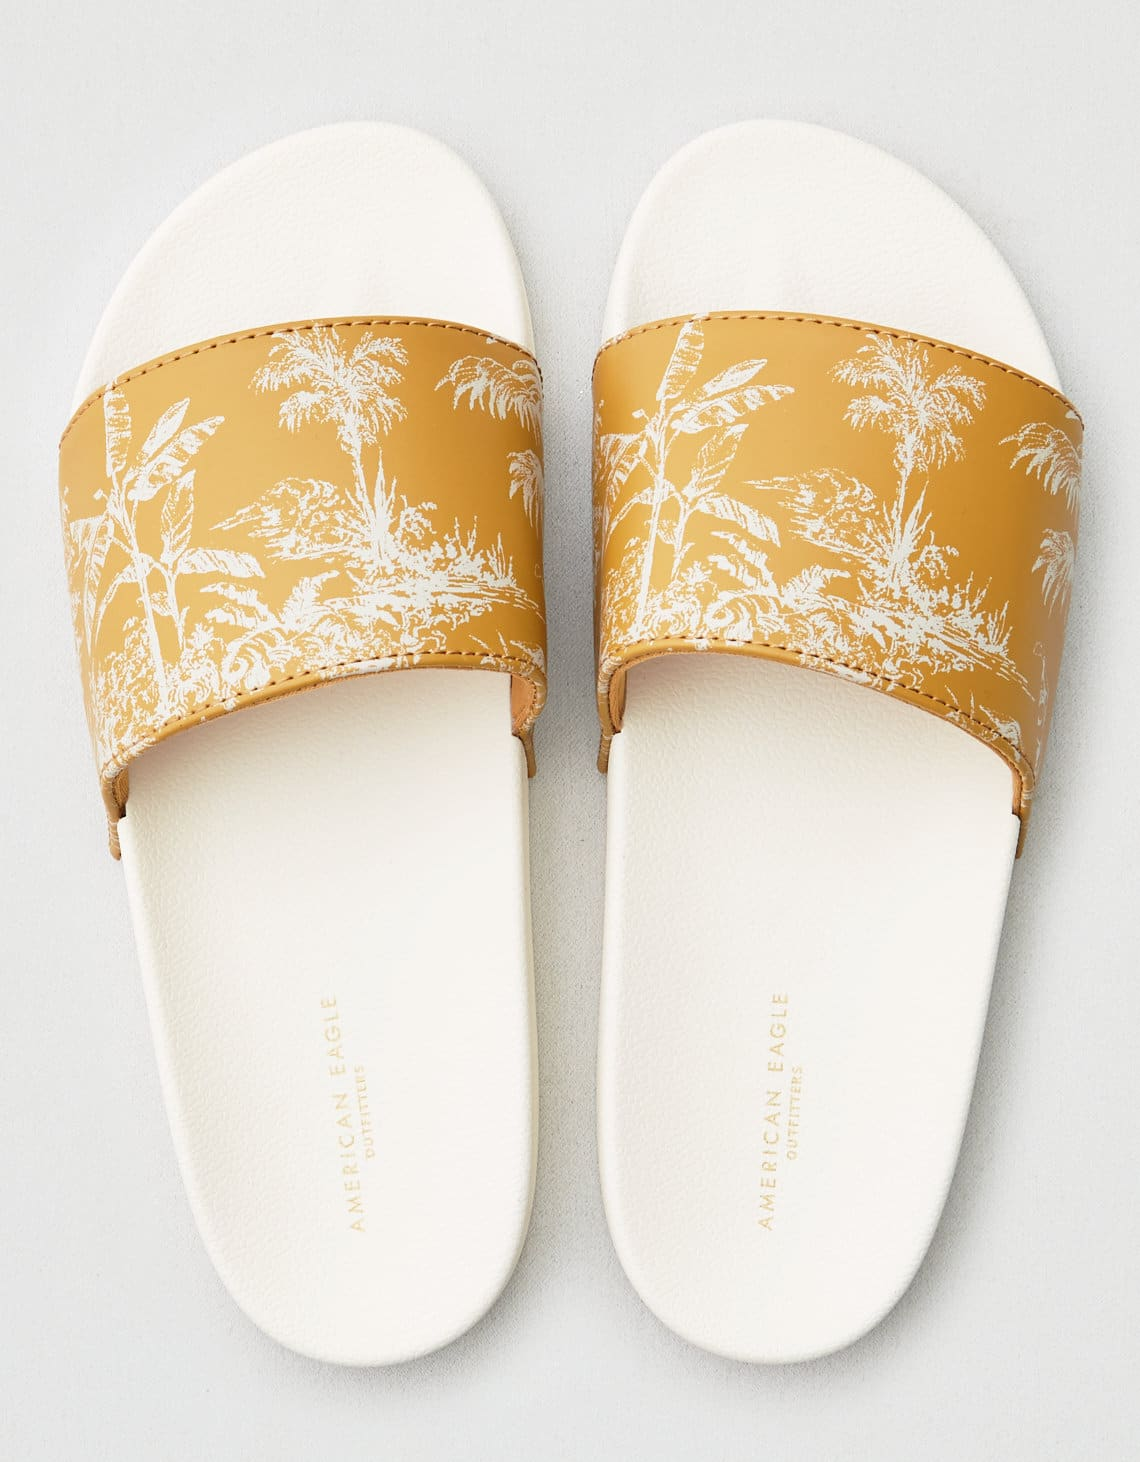 American Eagle Outfitters Women's Floral Pool Slide Sandals (mustard) $6, AEO Lace-Up Pointed Toe Flats (black, blush) $13.10 & More + FS  on $25+